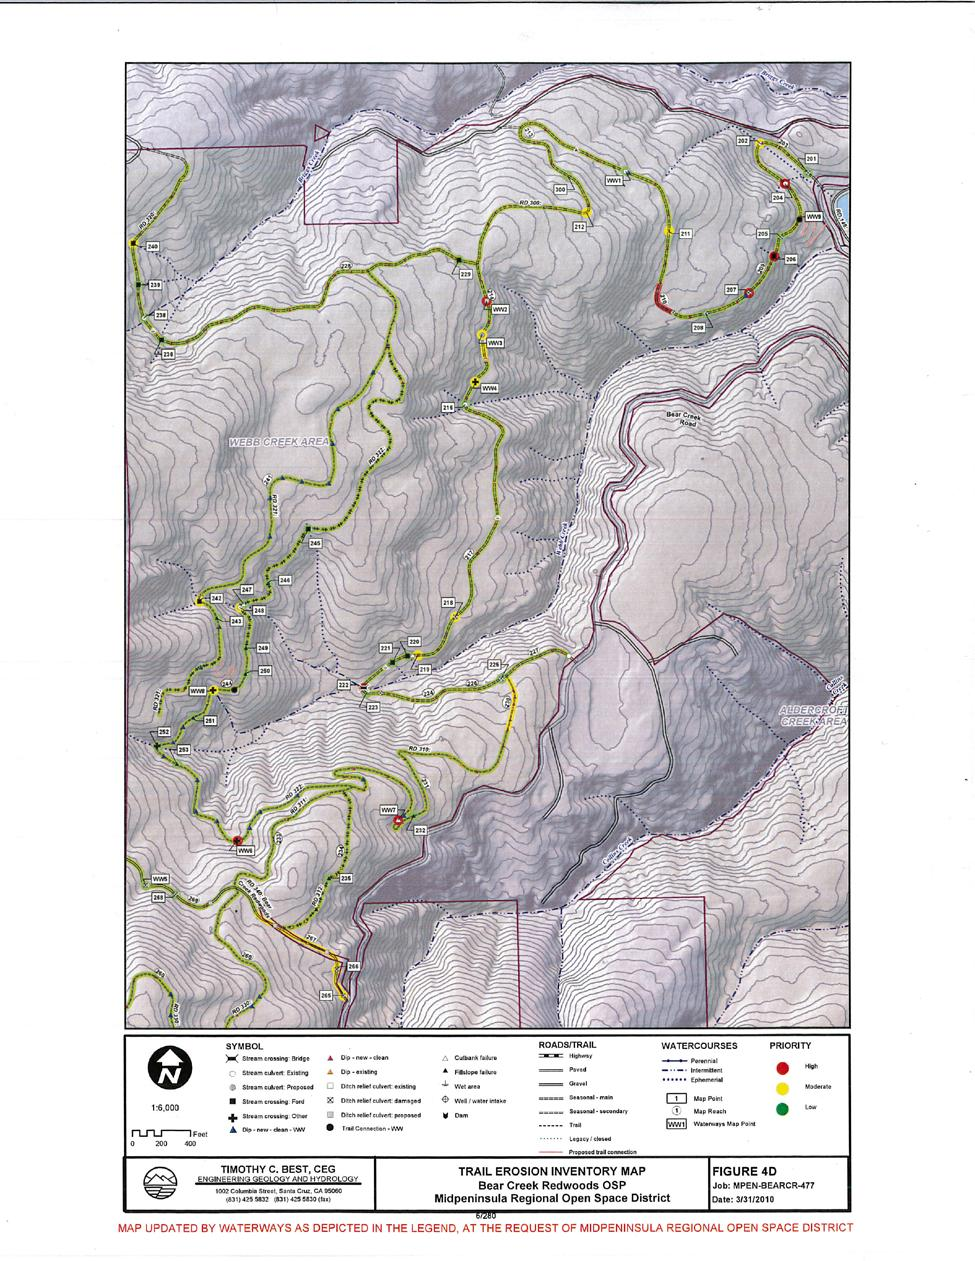 Overview of preserve trails and roads, Webb Creek